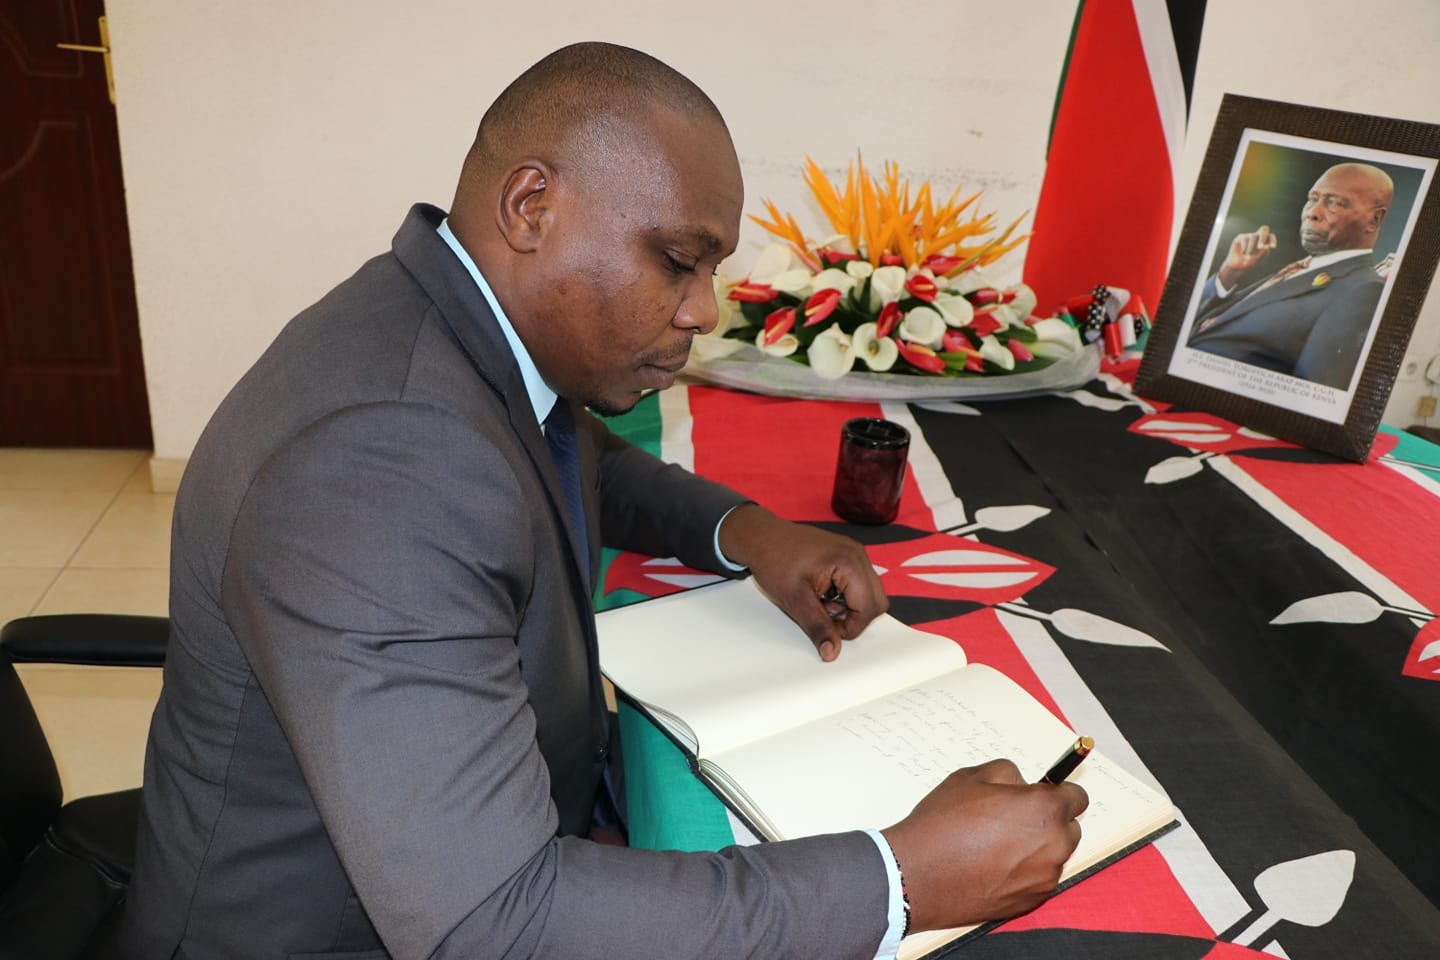 On behalf of the Association of Kenyans in Burundi the AKB Vice Chairman Collins Kinanja signing the condolence book, following the passing on of H.E Daniel Toroitich Arap Moi CGH; second President of the Republic of Kenya.